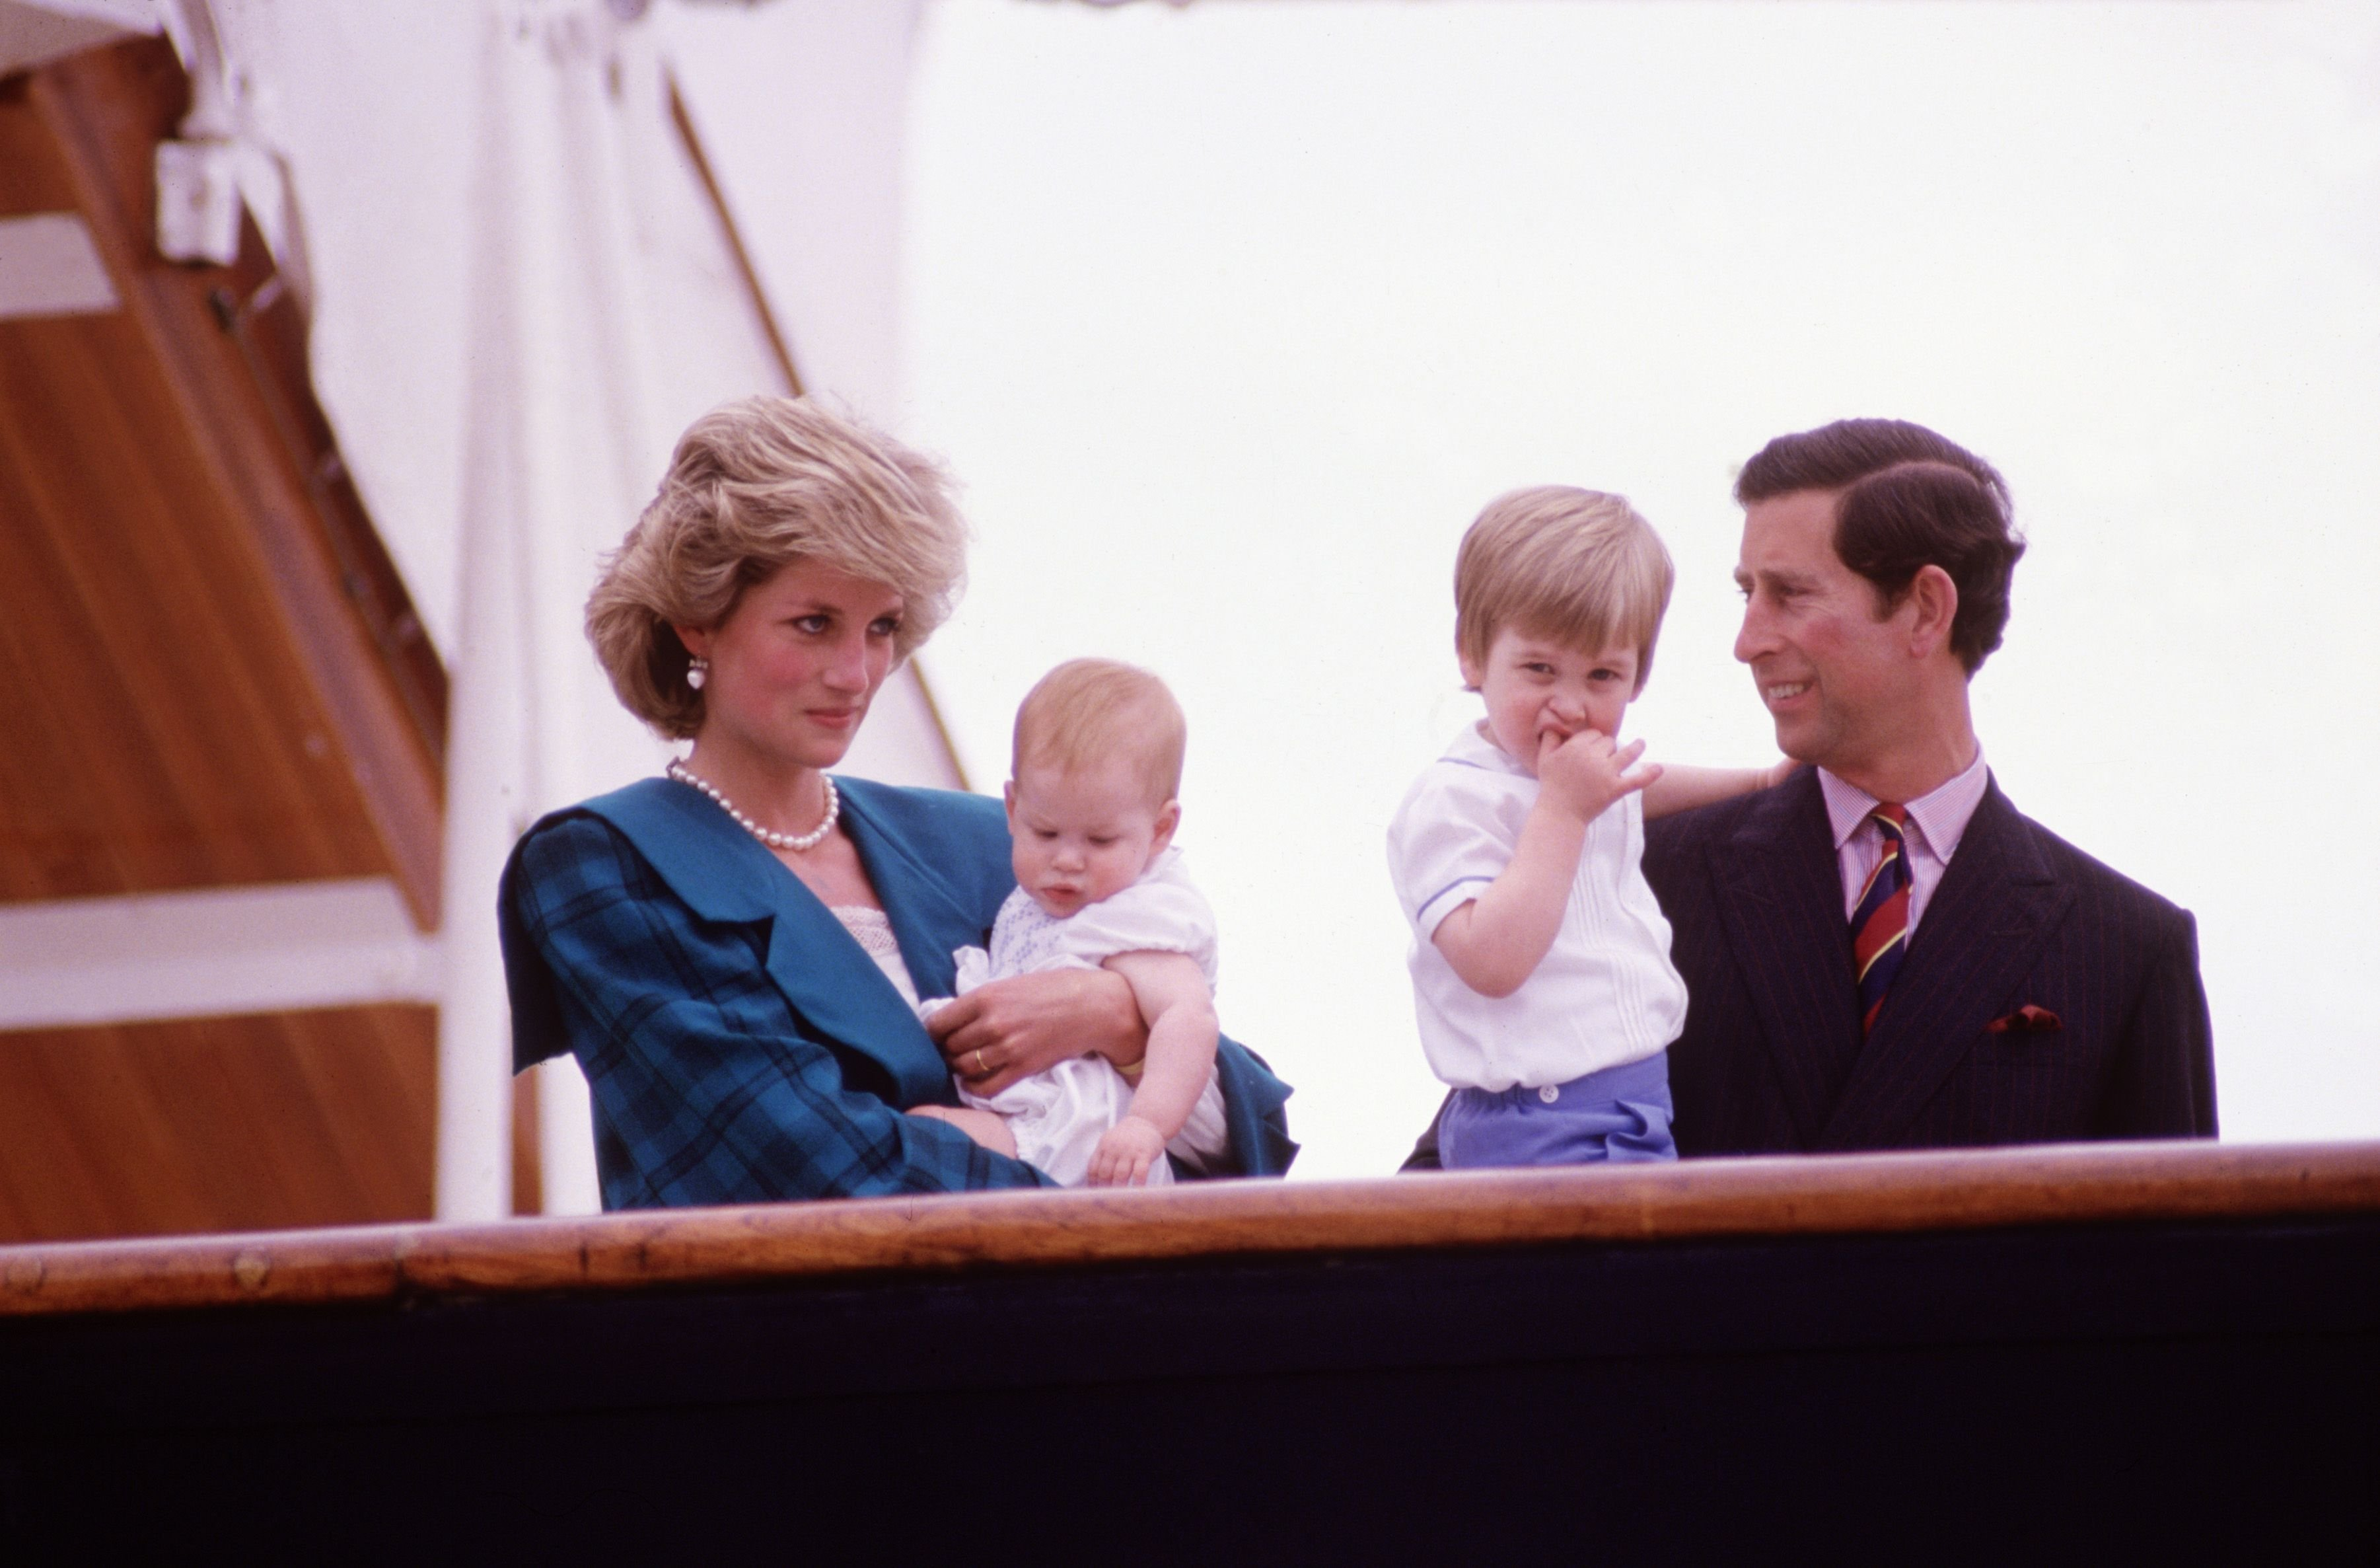 Diana Princess of Wales and Charles Prince of Wales with Prince Harry and Prince William on the deck of the Royal Yacht Britannia in 1985 | Source: Getty Images